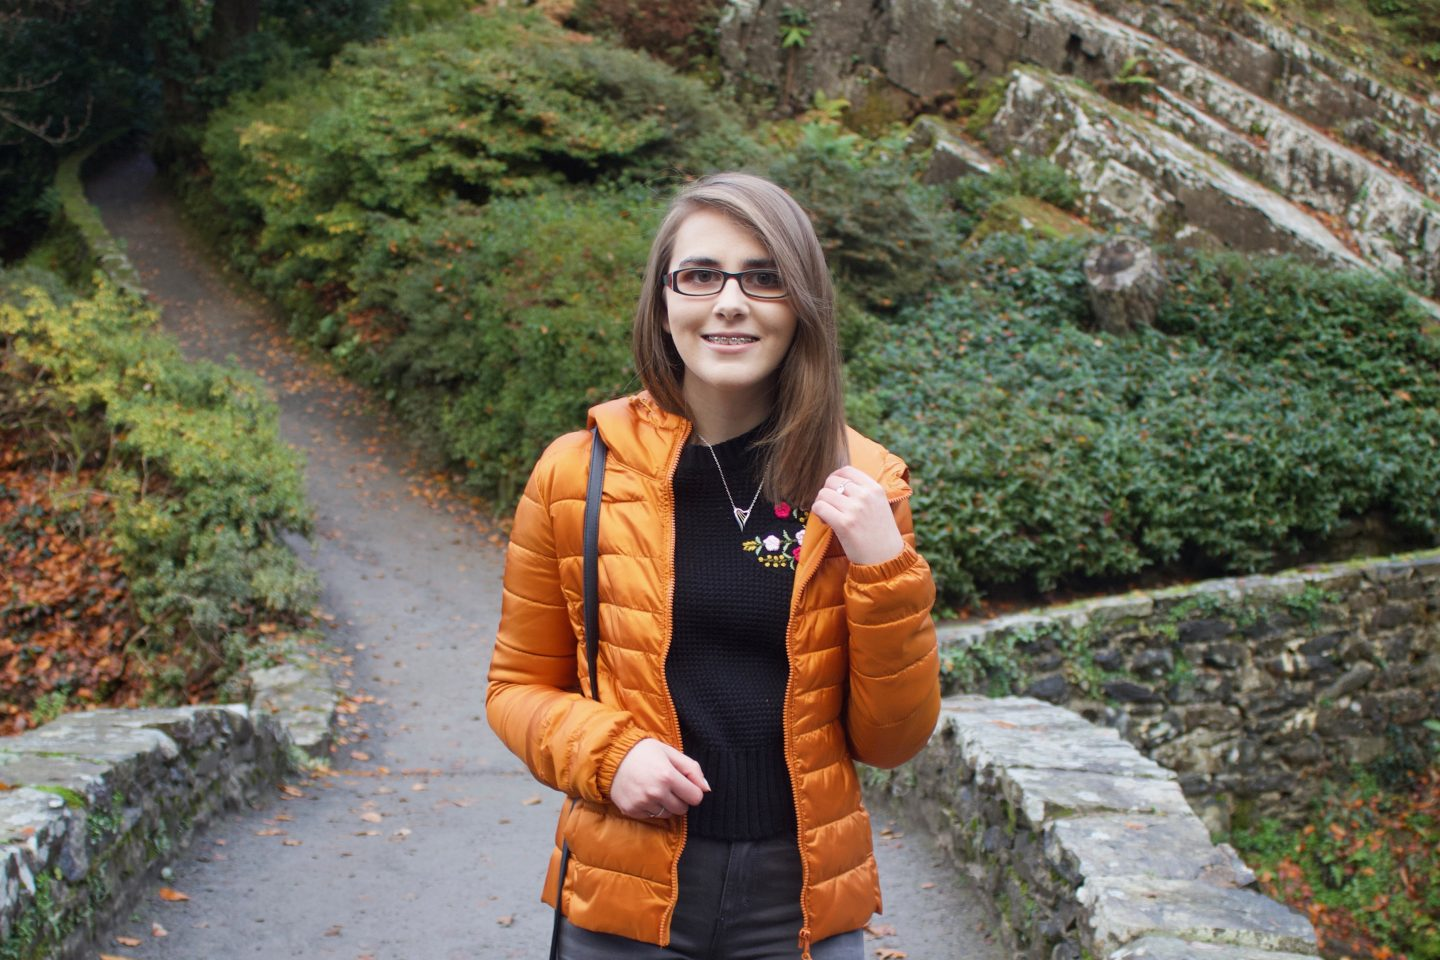 A photo of Elin wearing a black knitted jumper, an orange quilted jacket and a harp shaped necklace